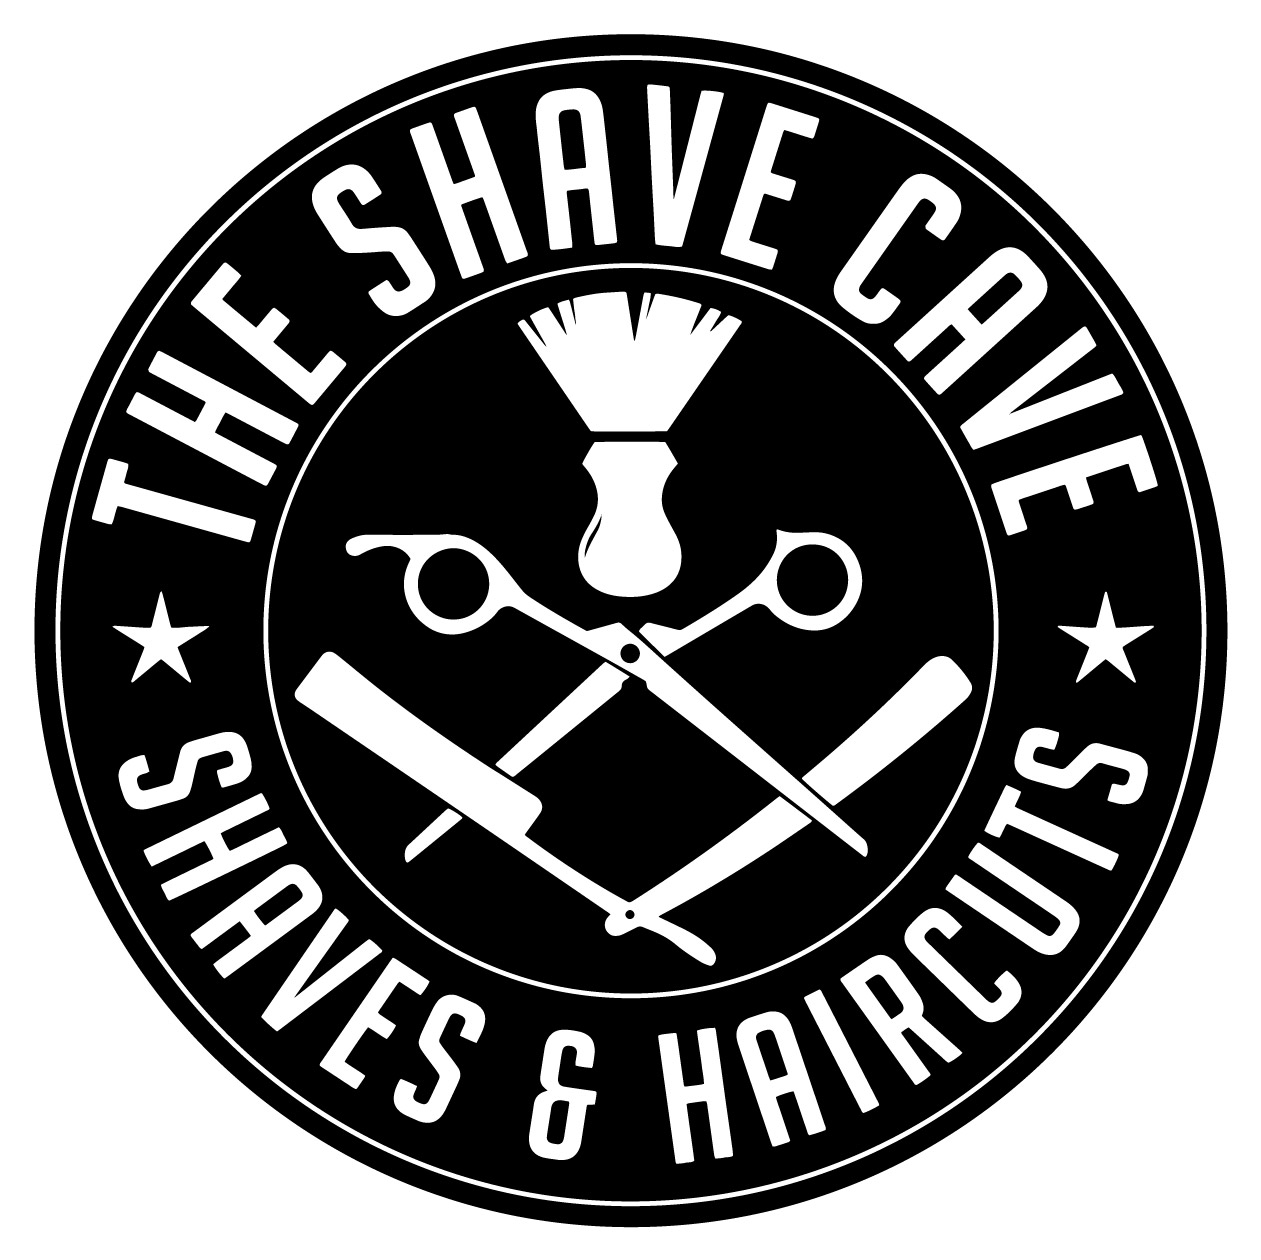 The Shave Cave